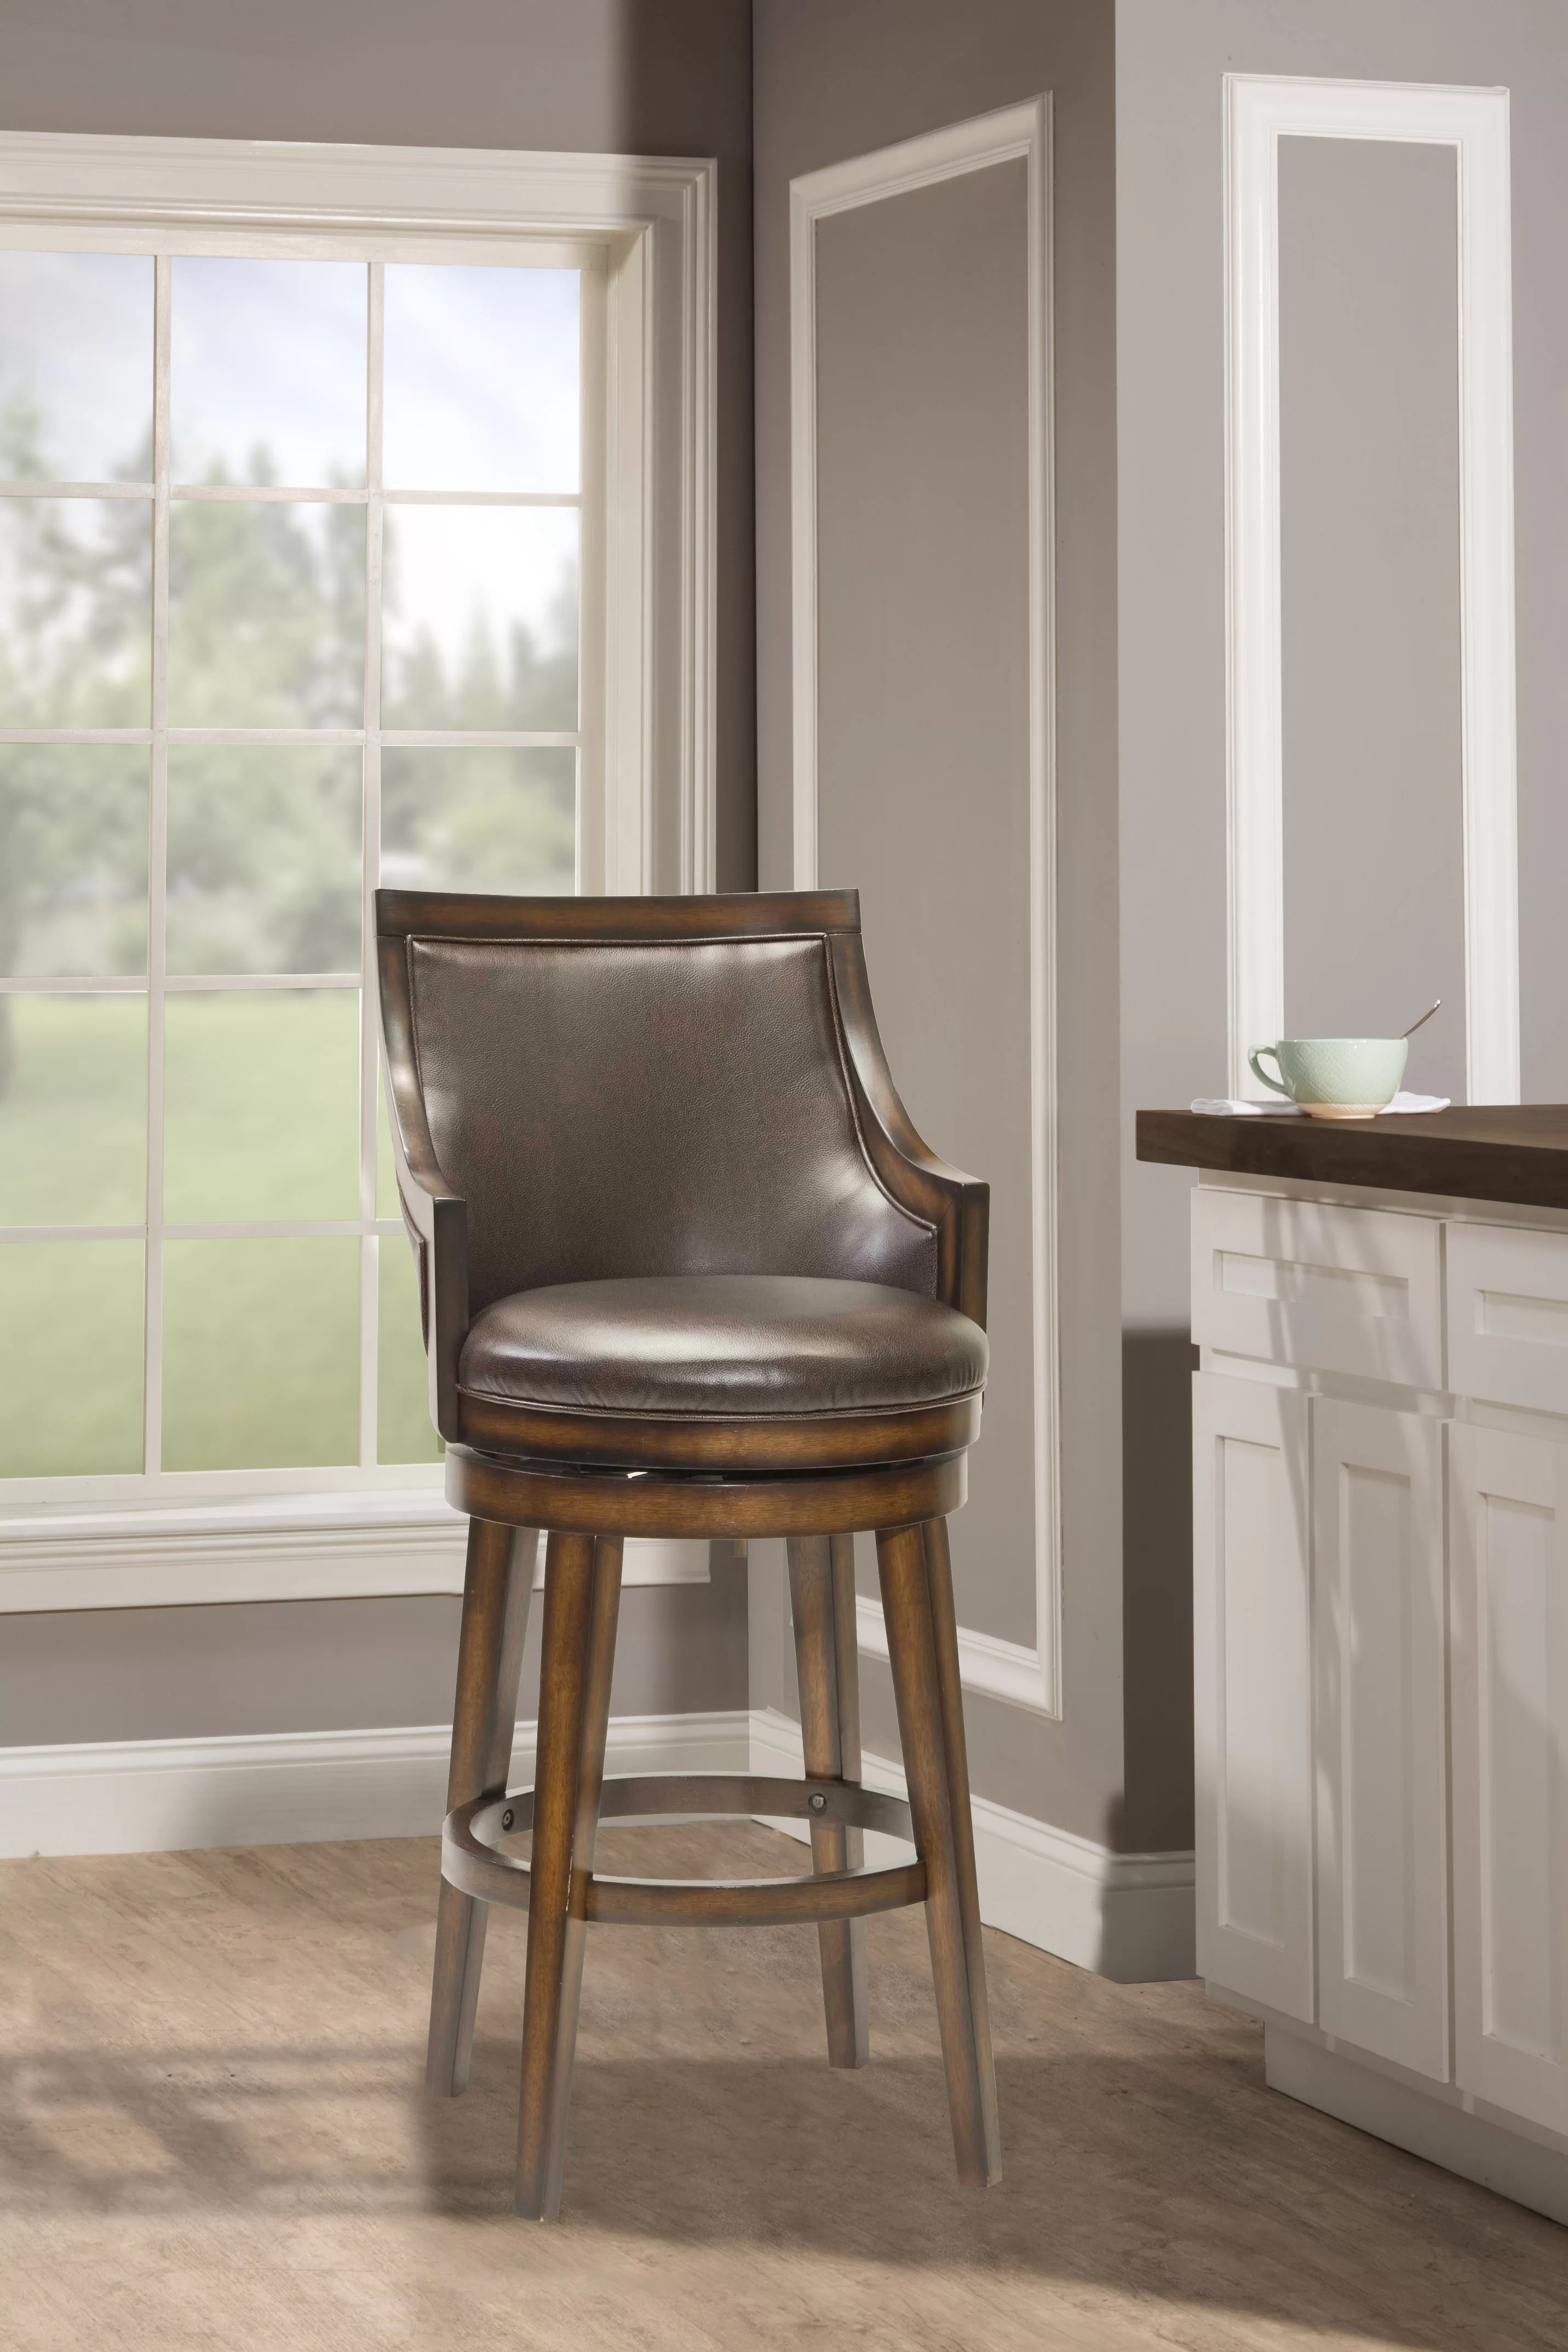 Millwood Pines Norval Bar Counter Swivel Stool Reviews